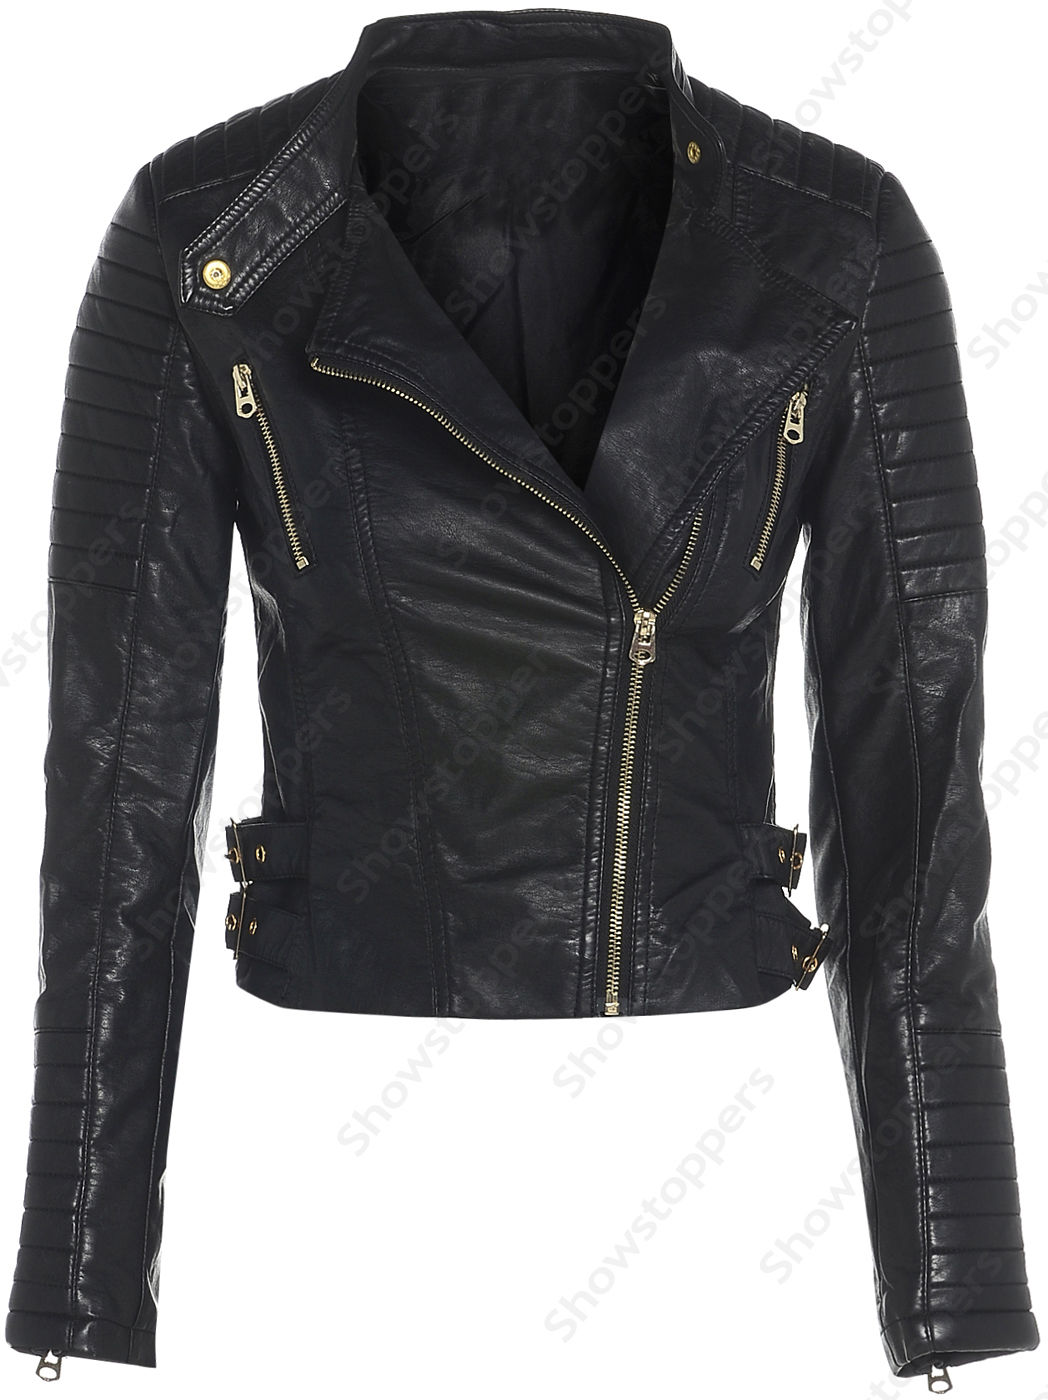 Size 8 10 12 14 16 NEW Womens BIKER JACKET Crop FAUX LEATHER Ladies ZIP Coat | eBay